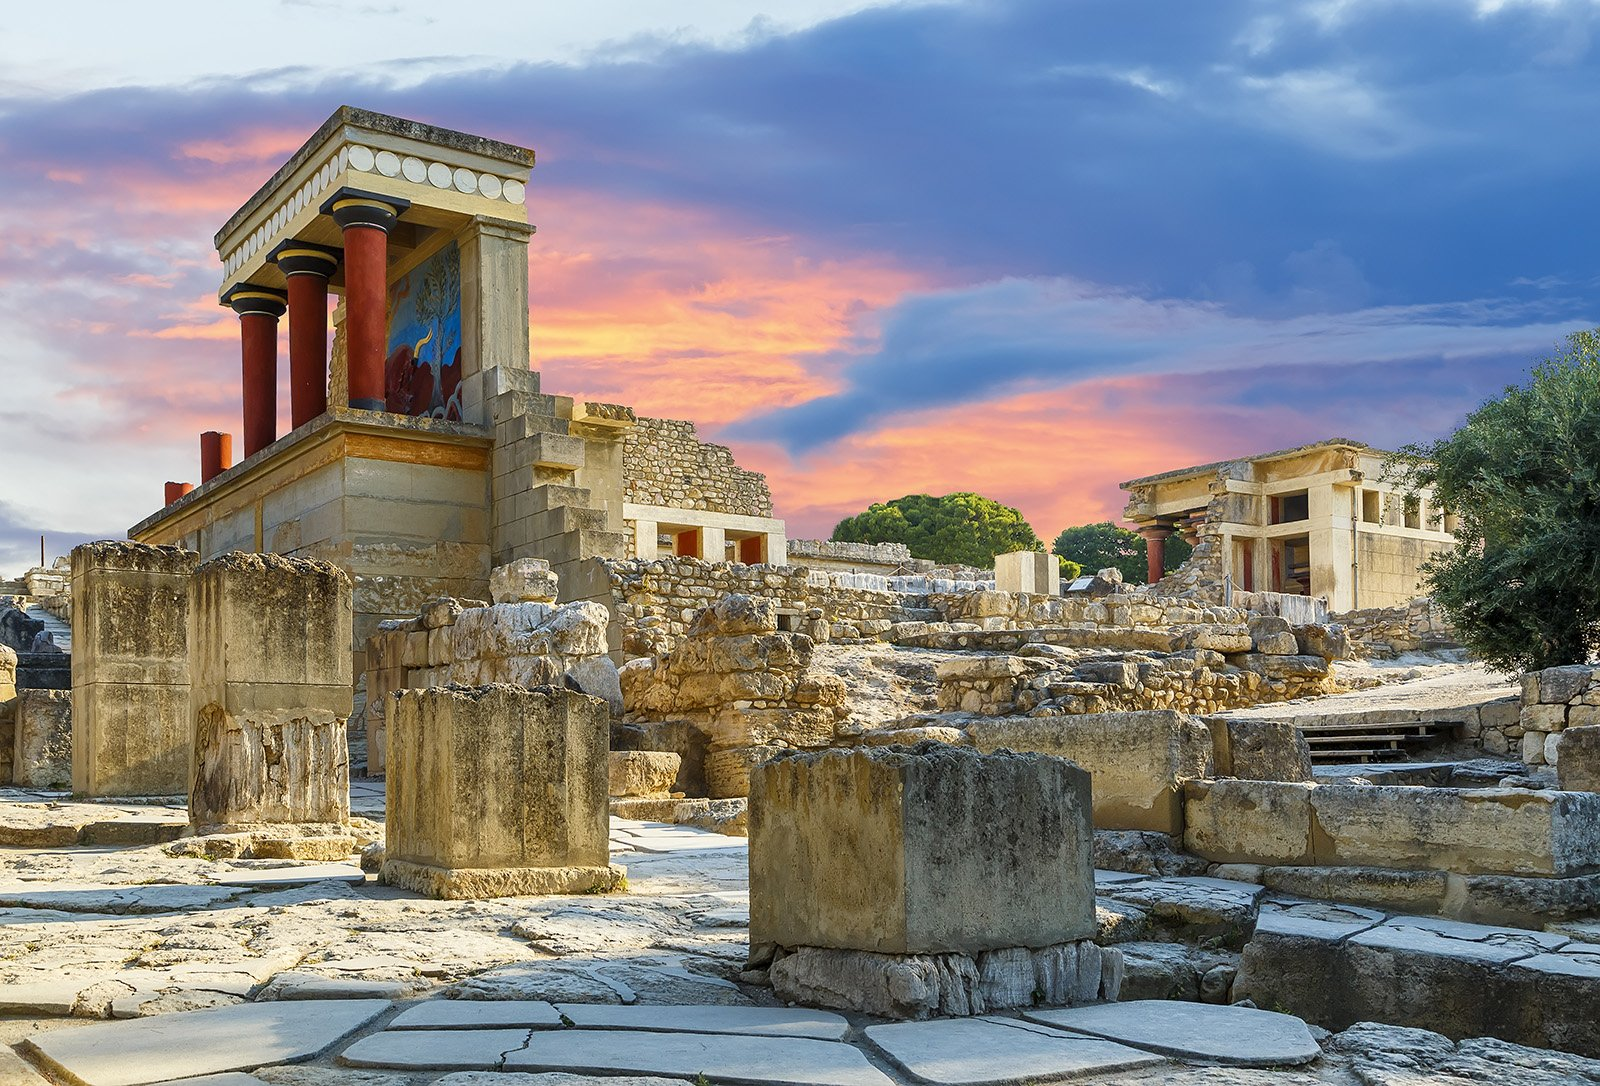 Top Attractions on Crete, Greece - Palace of Knossos © Timofeev Vladimir, Shutterstock